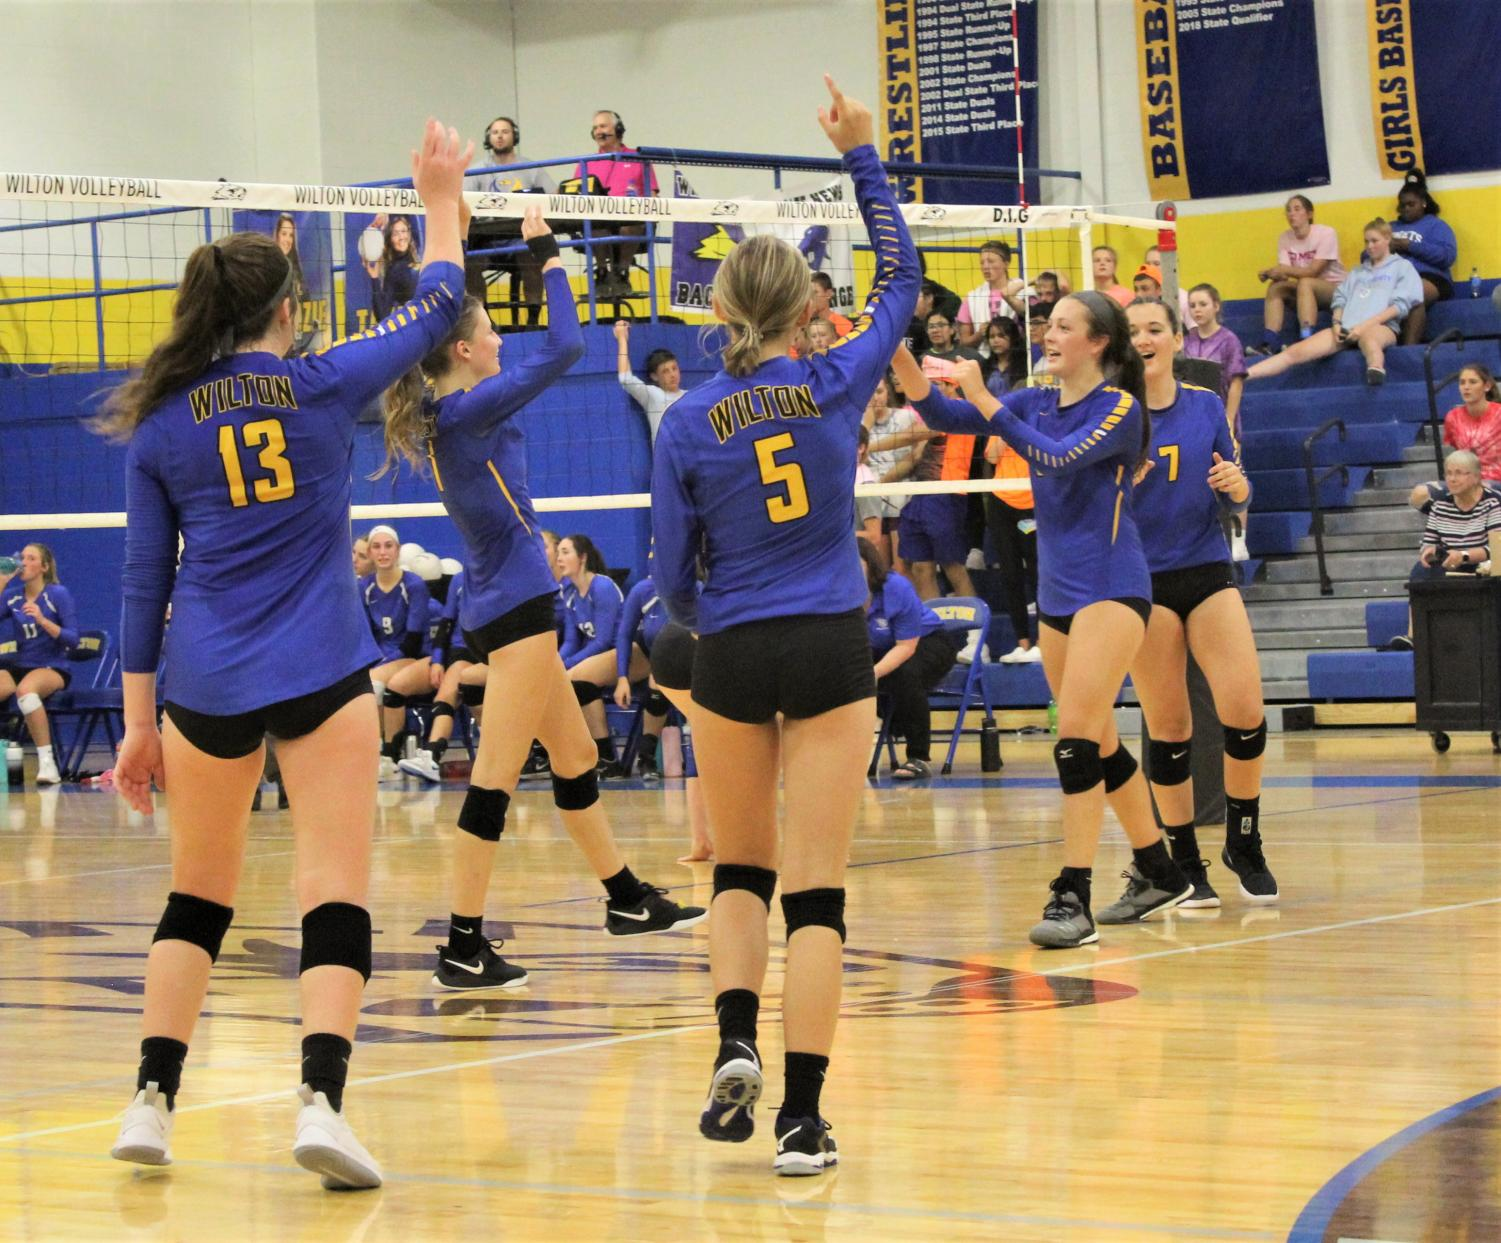 The Wilton Volleyball team celebrates a point against West Liberty on September 17.